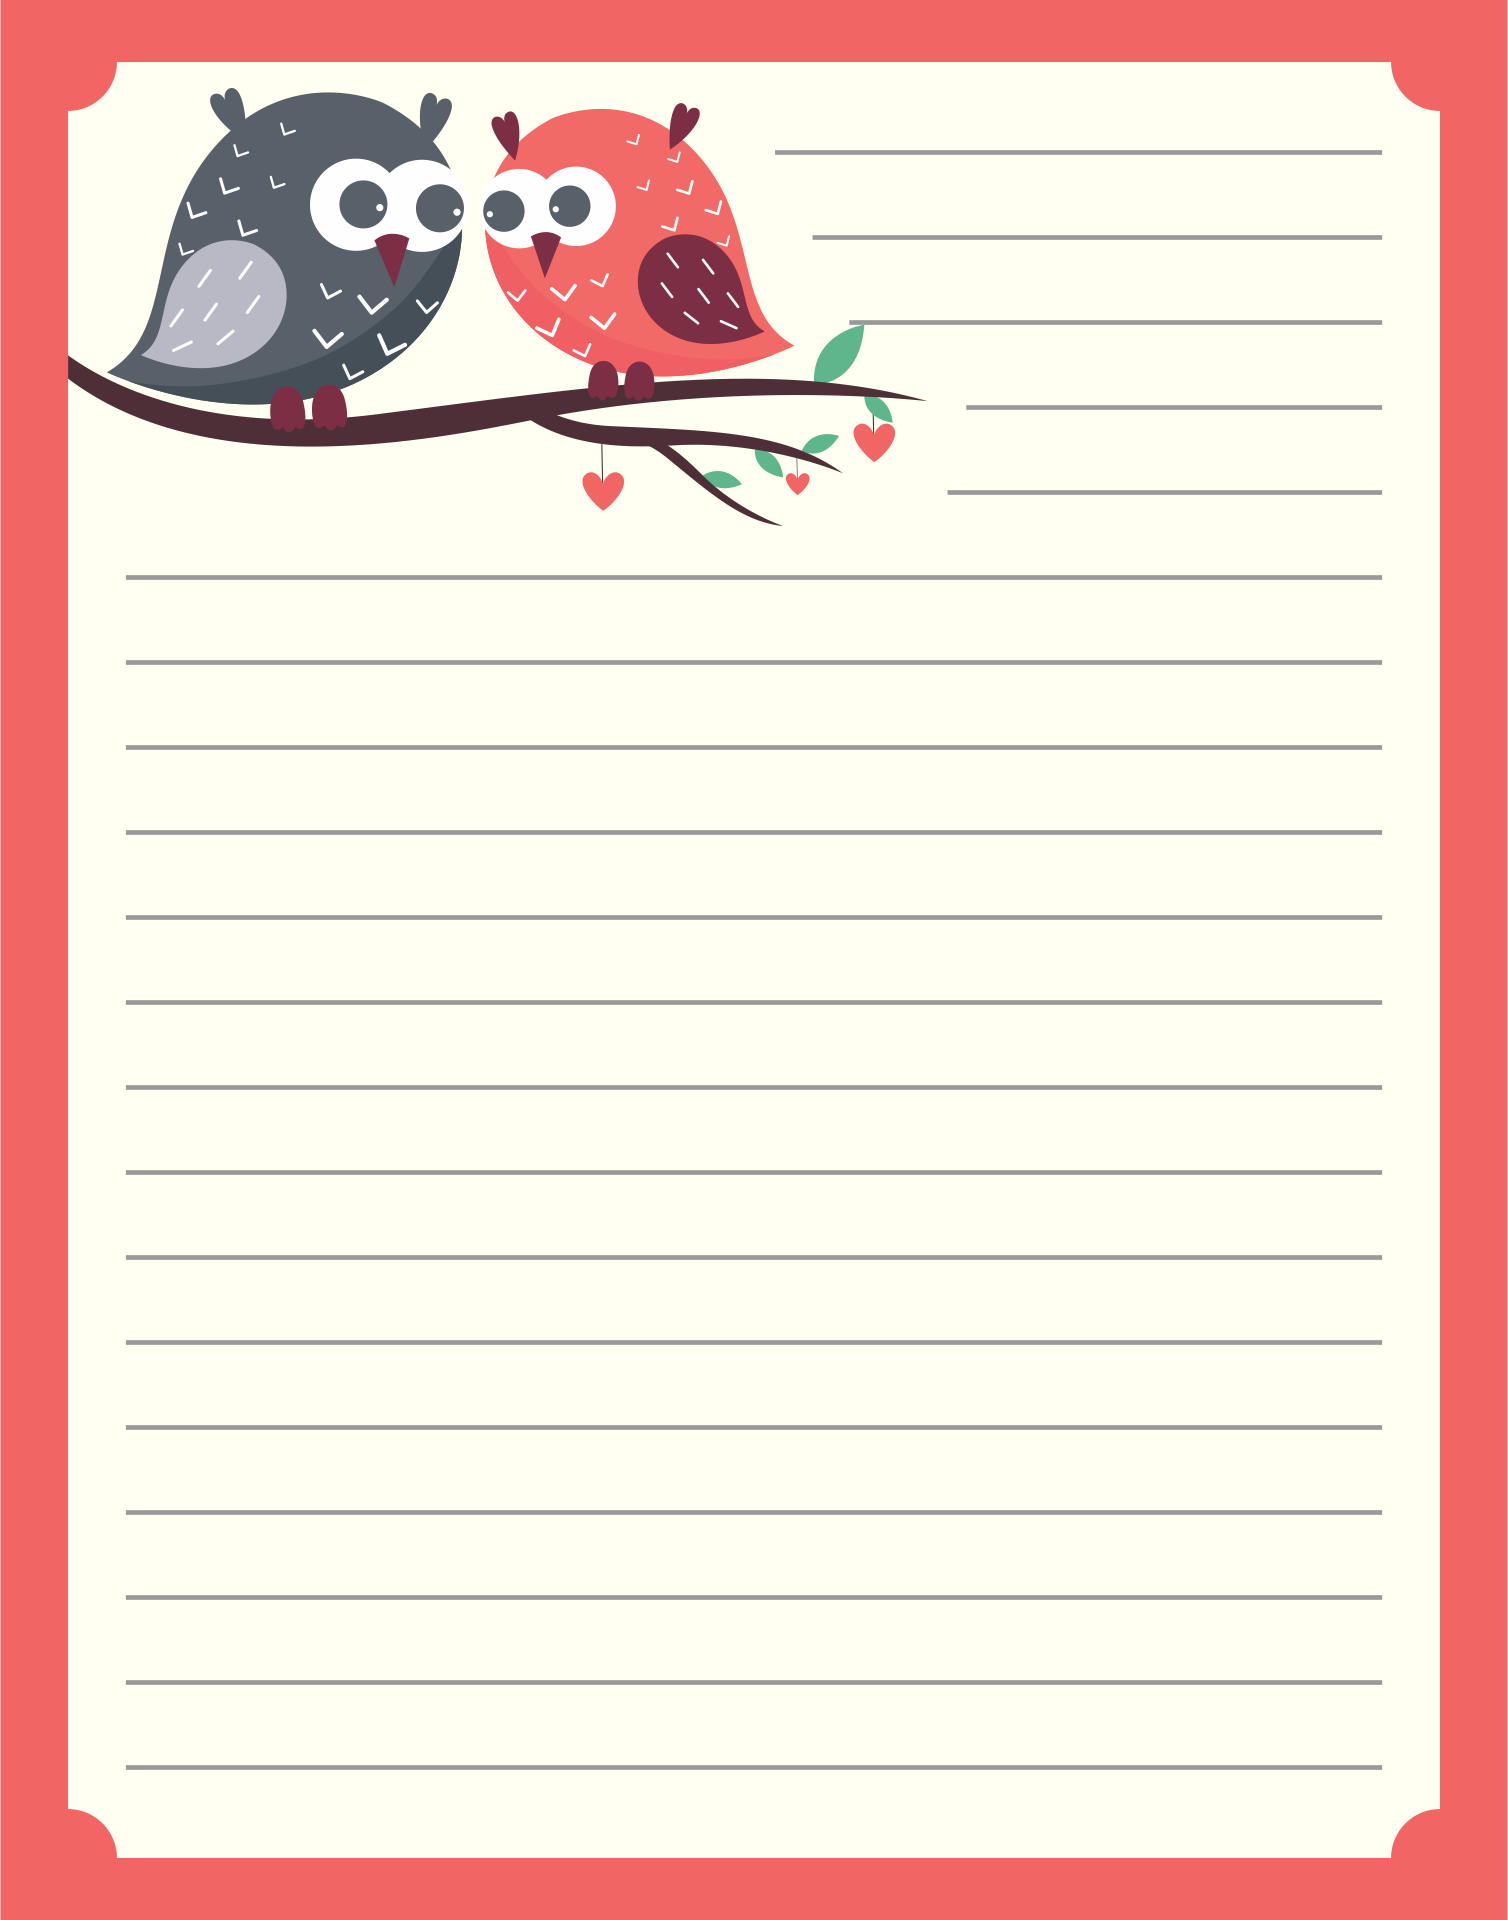 Free Printable Owl Stationery